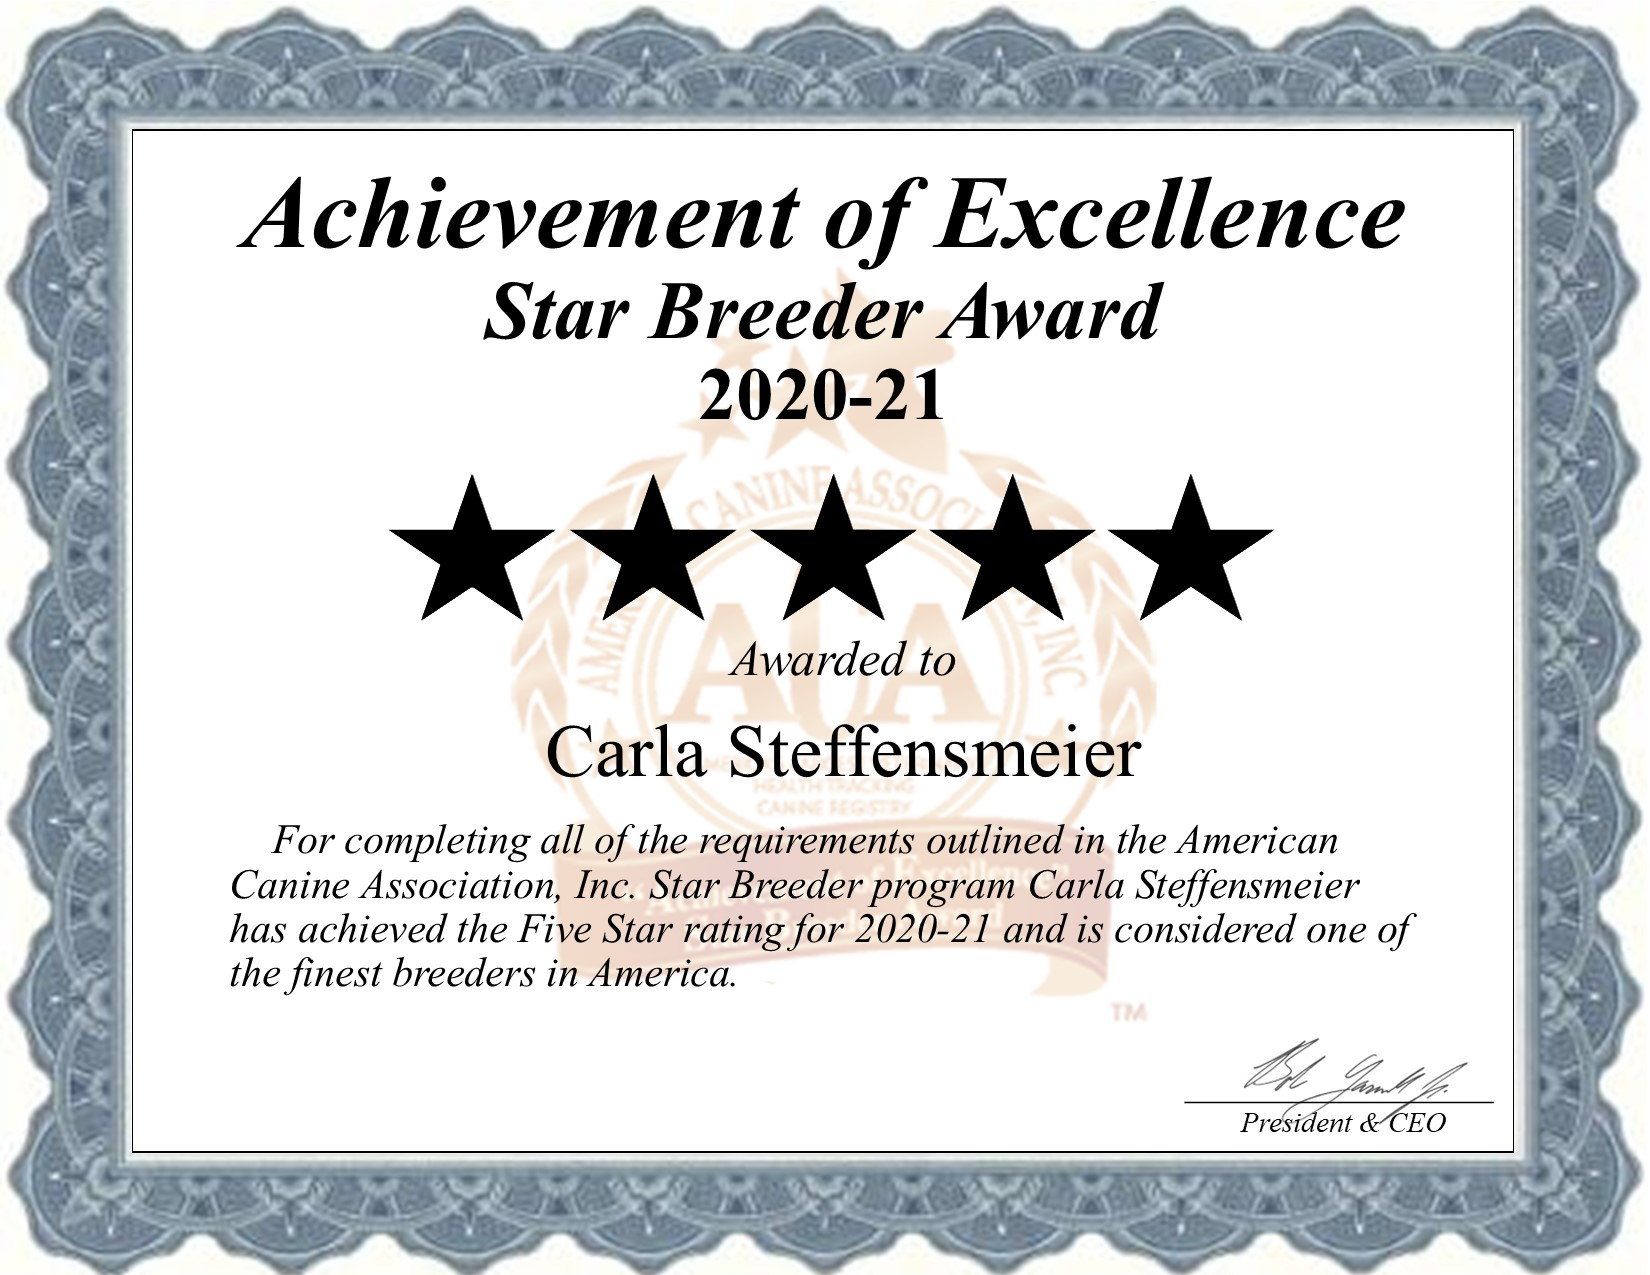 Carla, Steffensmeier, dog, breeder, star, certificate, Carla-Steffensmeier, West Point, IA, Iowa, puppy, dog, kennels, mill, puppymill, usda, 5-star, aca, ica, registered, golden-retriever, 42-a-1368